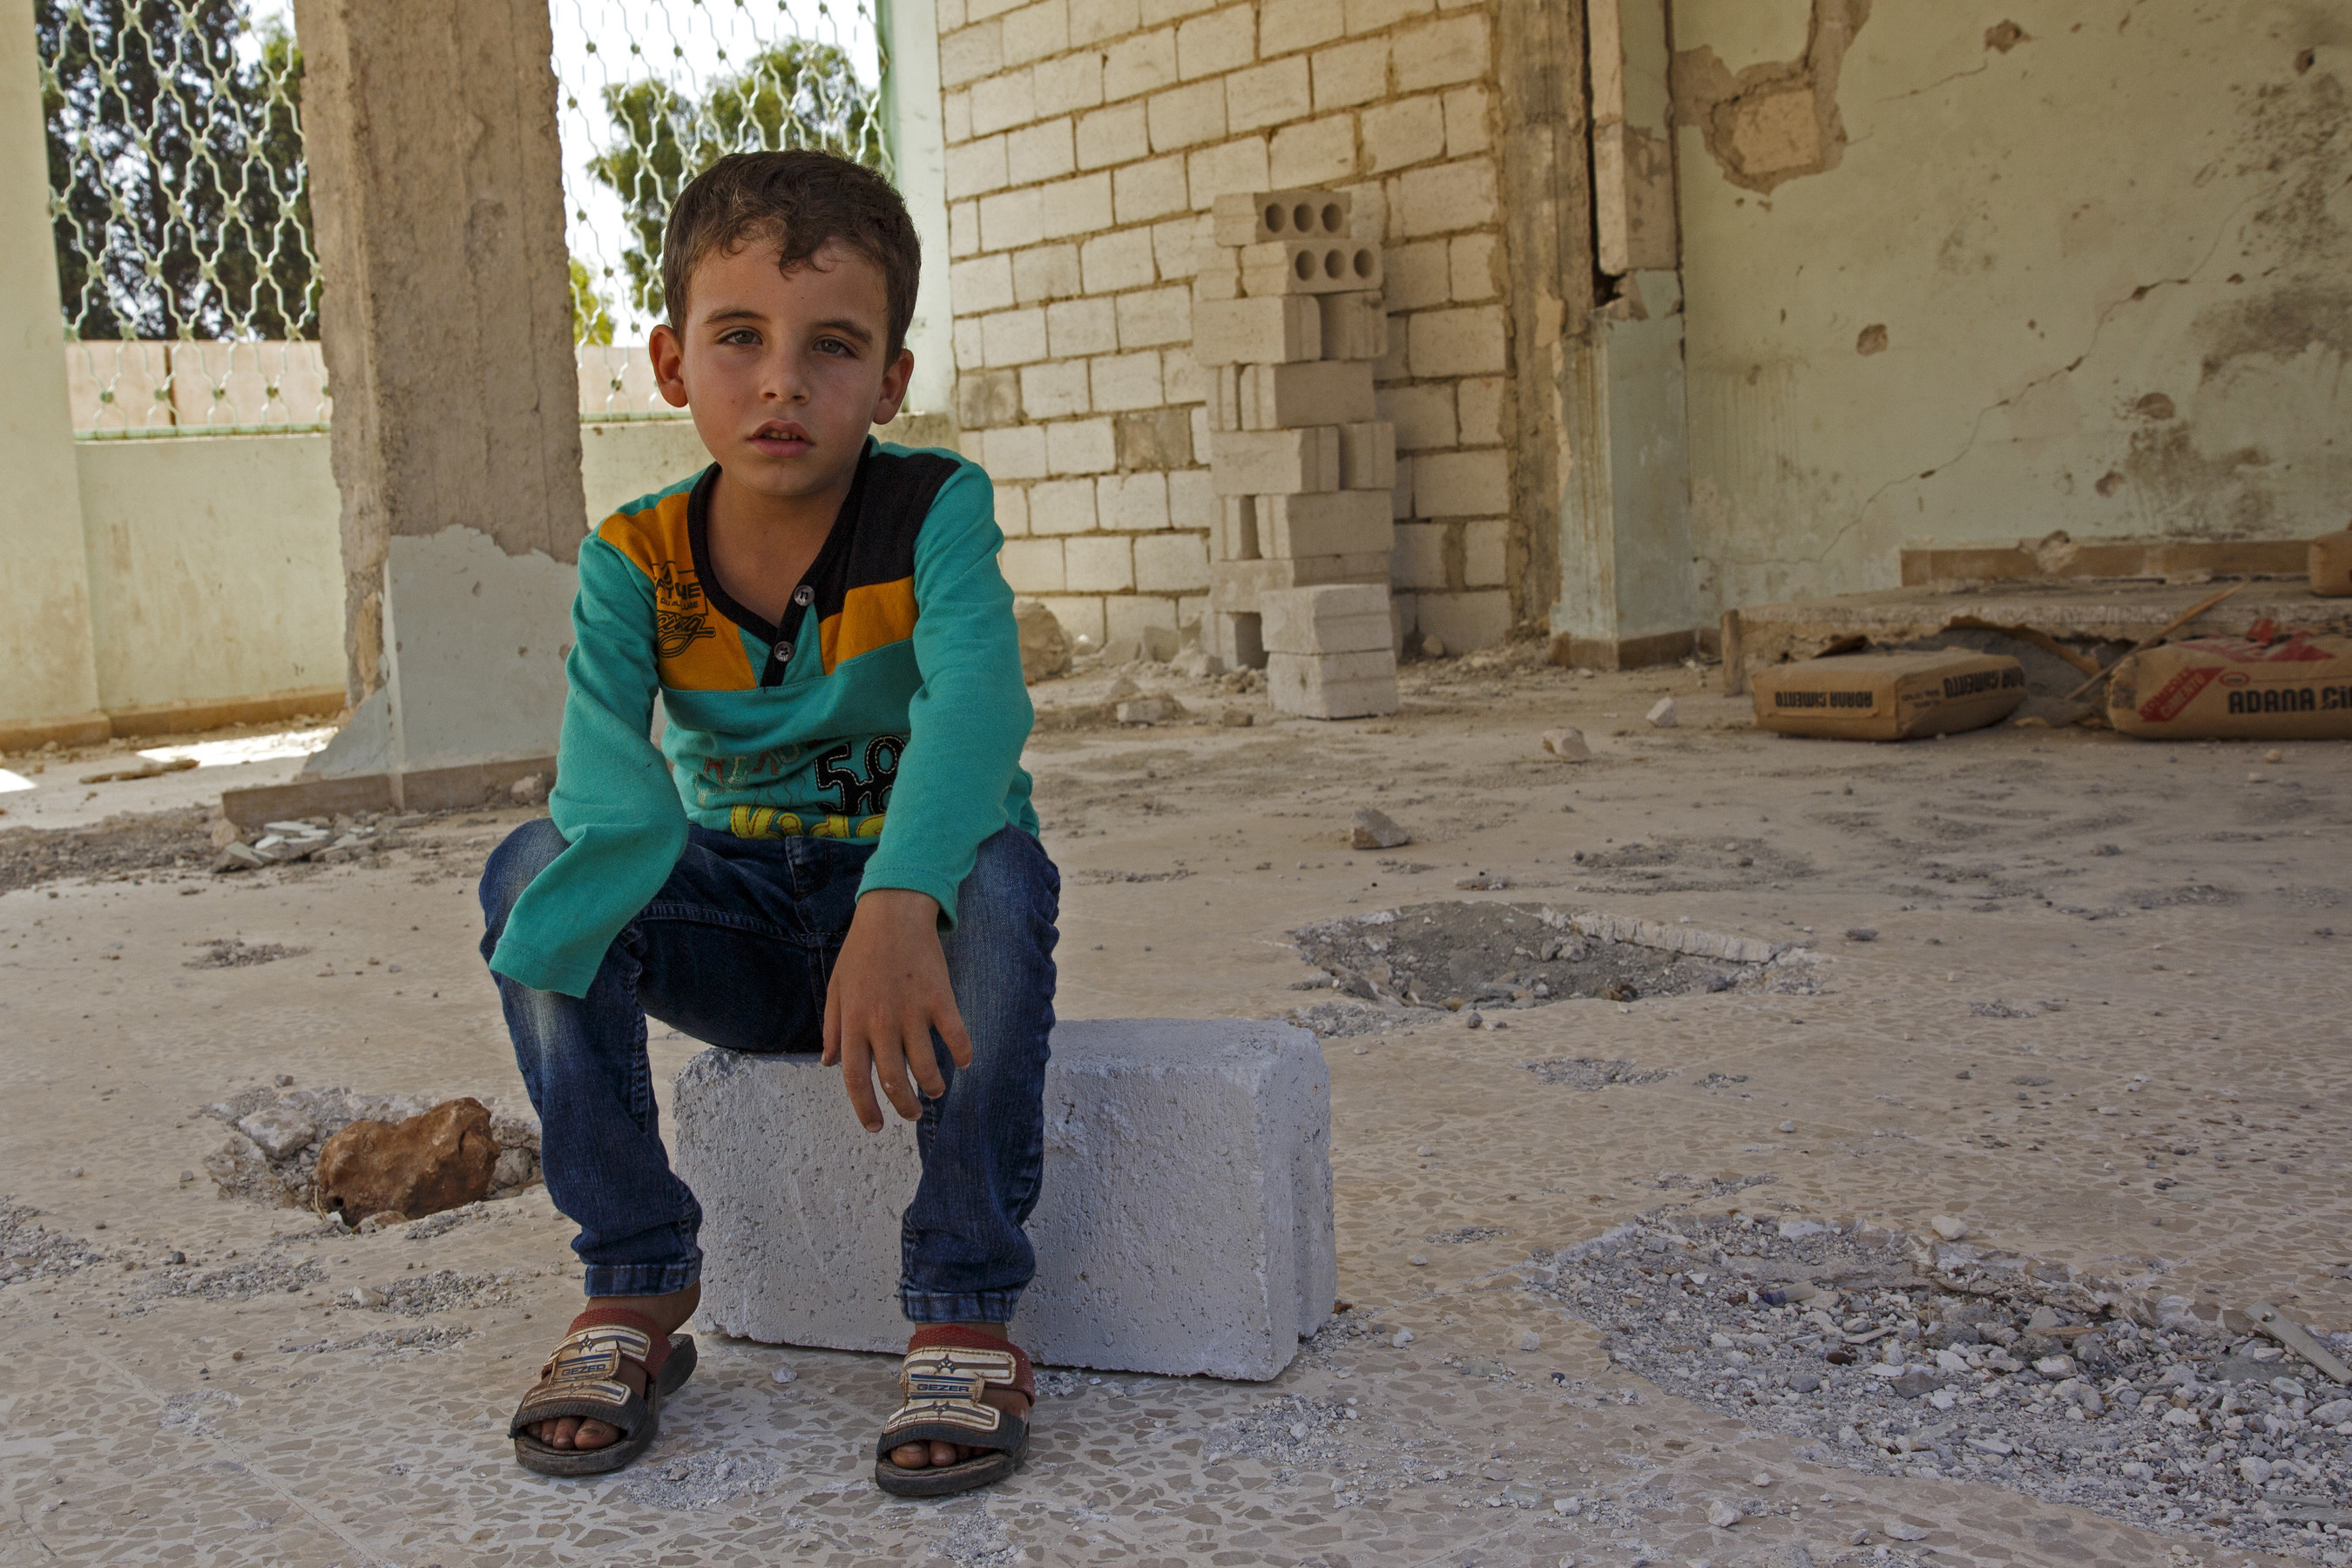 Khalid*, 7, suffered severe injuries and lost his hand when his school in northern Syria was attacked in March 2015. Photo by Ahmad Baroudi/Save the Children (* after a name indicates that the name has been changed to protect identity).